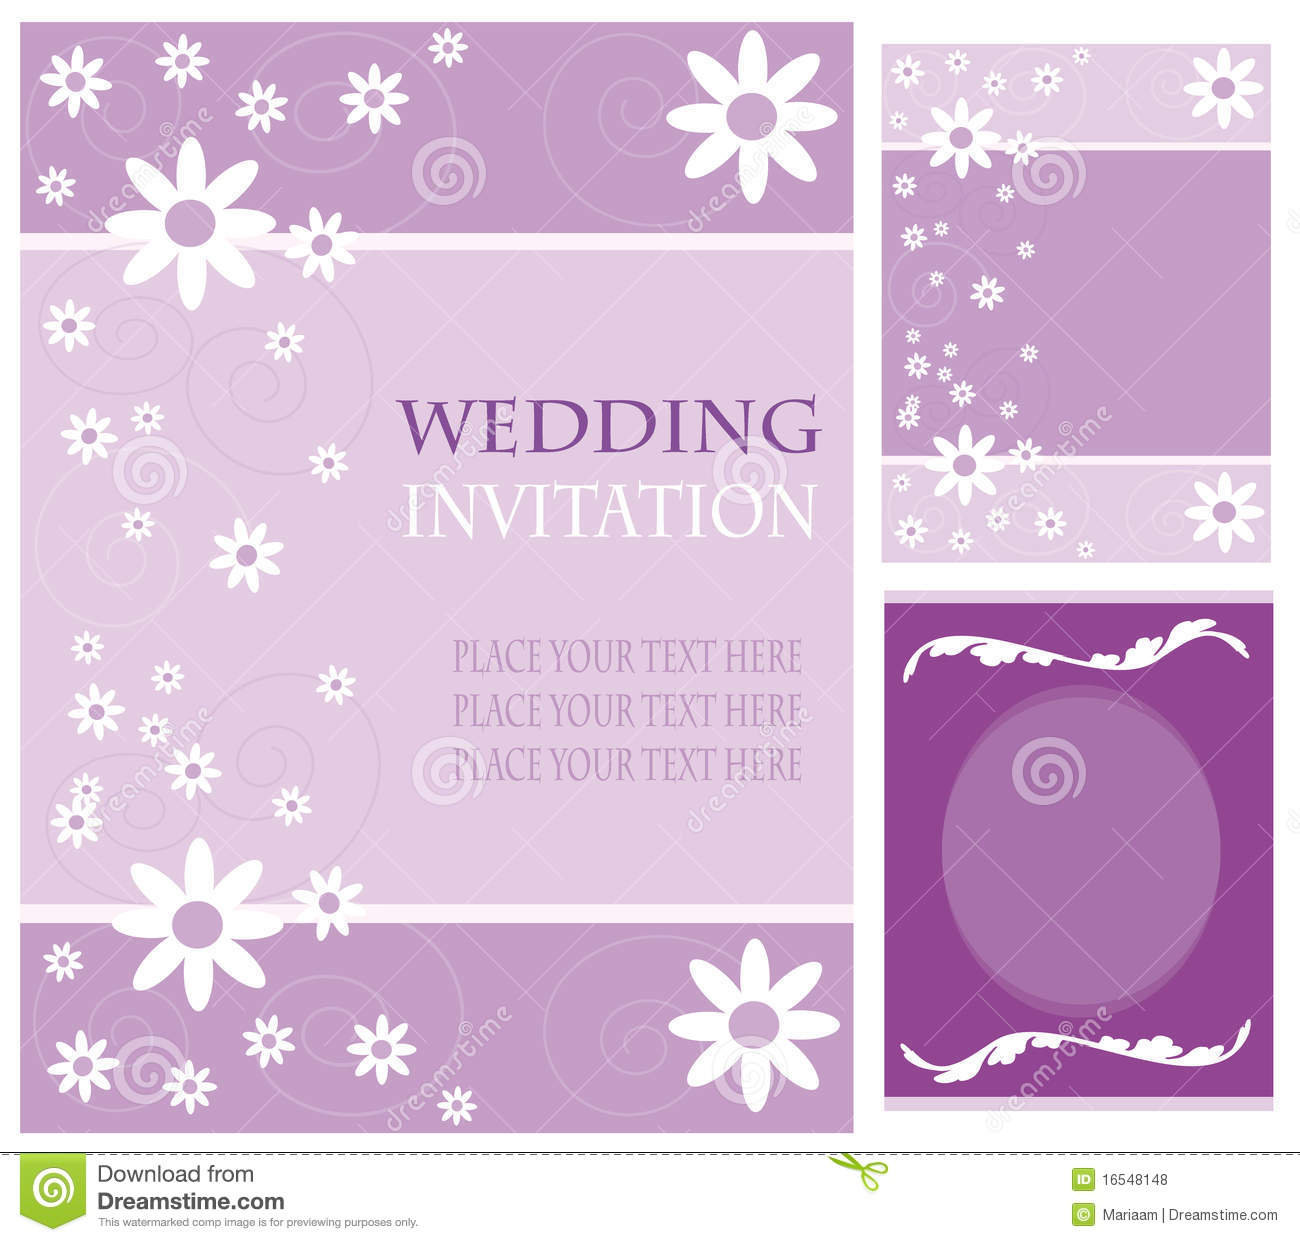 Wedding invitation cards stock illustration. Image of